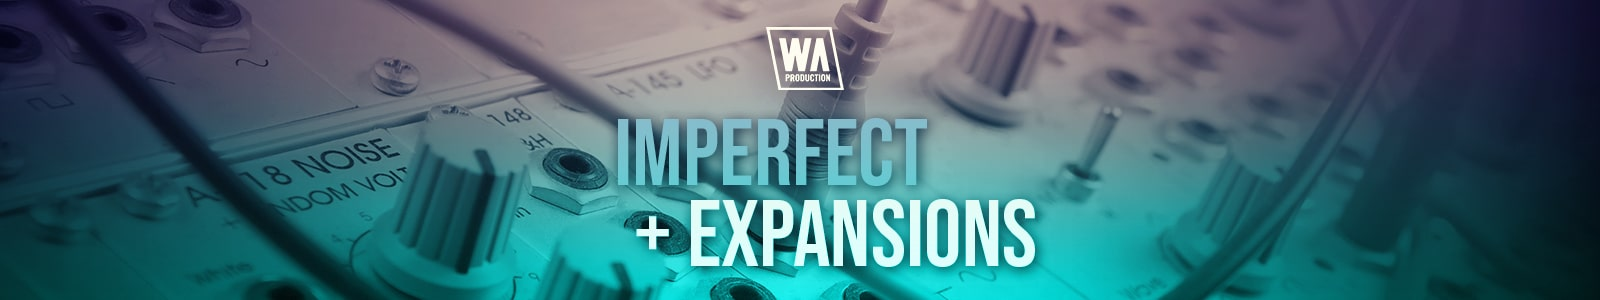 imperfect + expansions